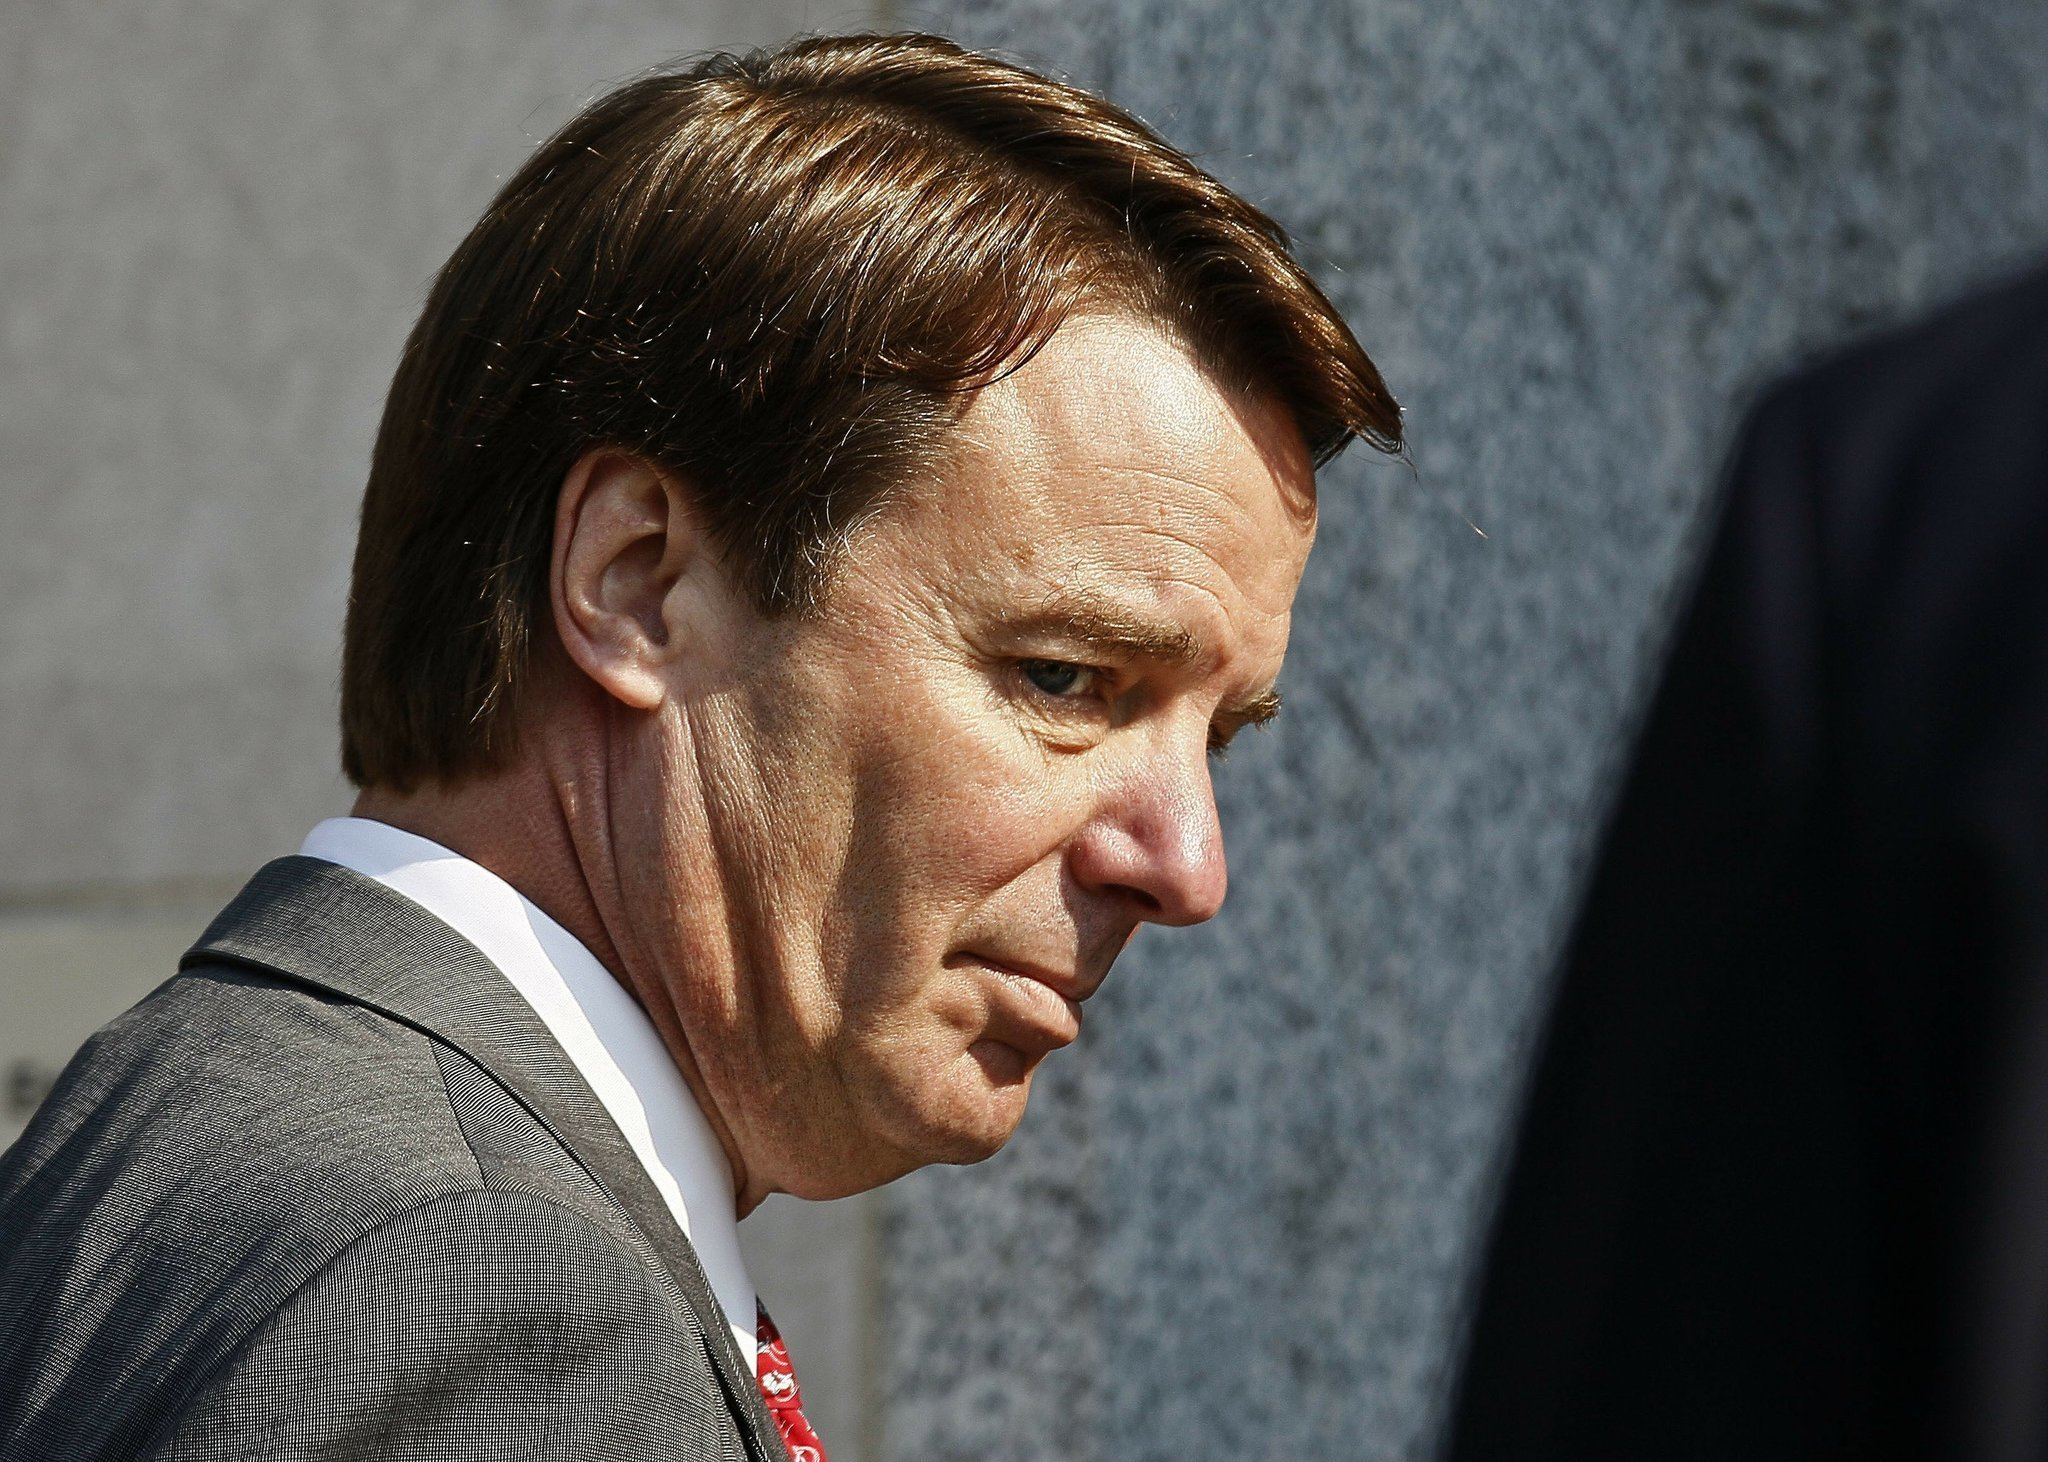 A Look At Political Hair Scandals Over The Years The San Diego